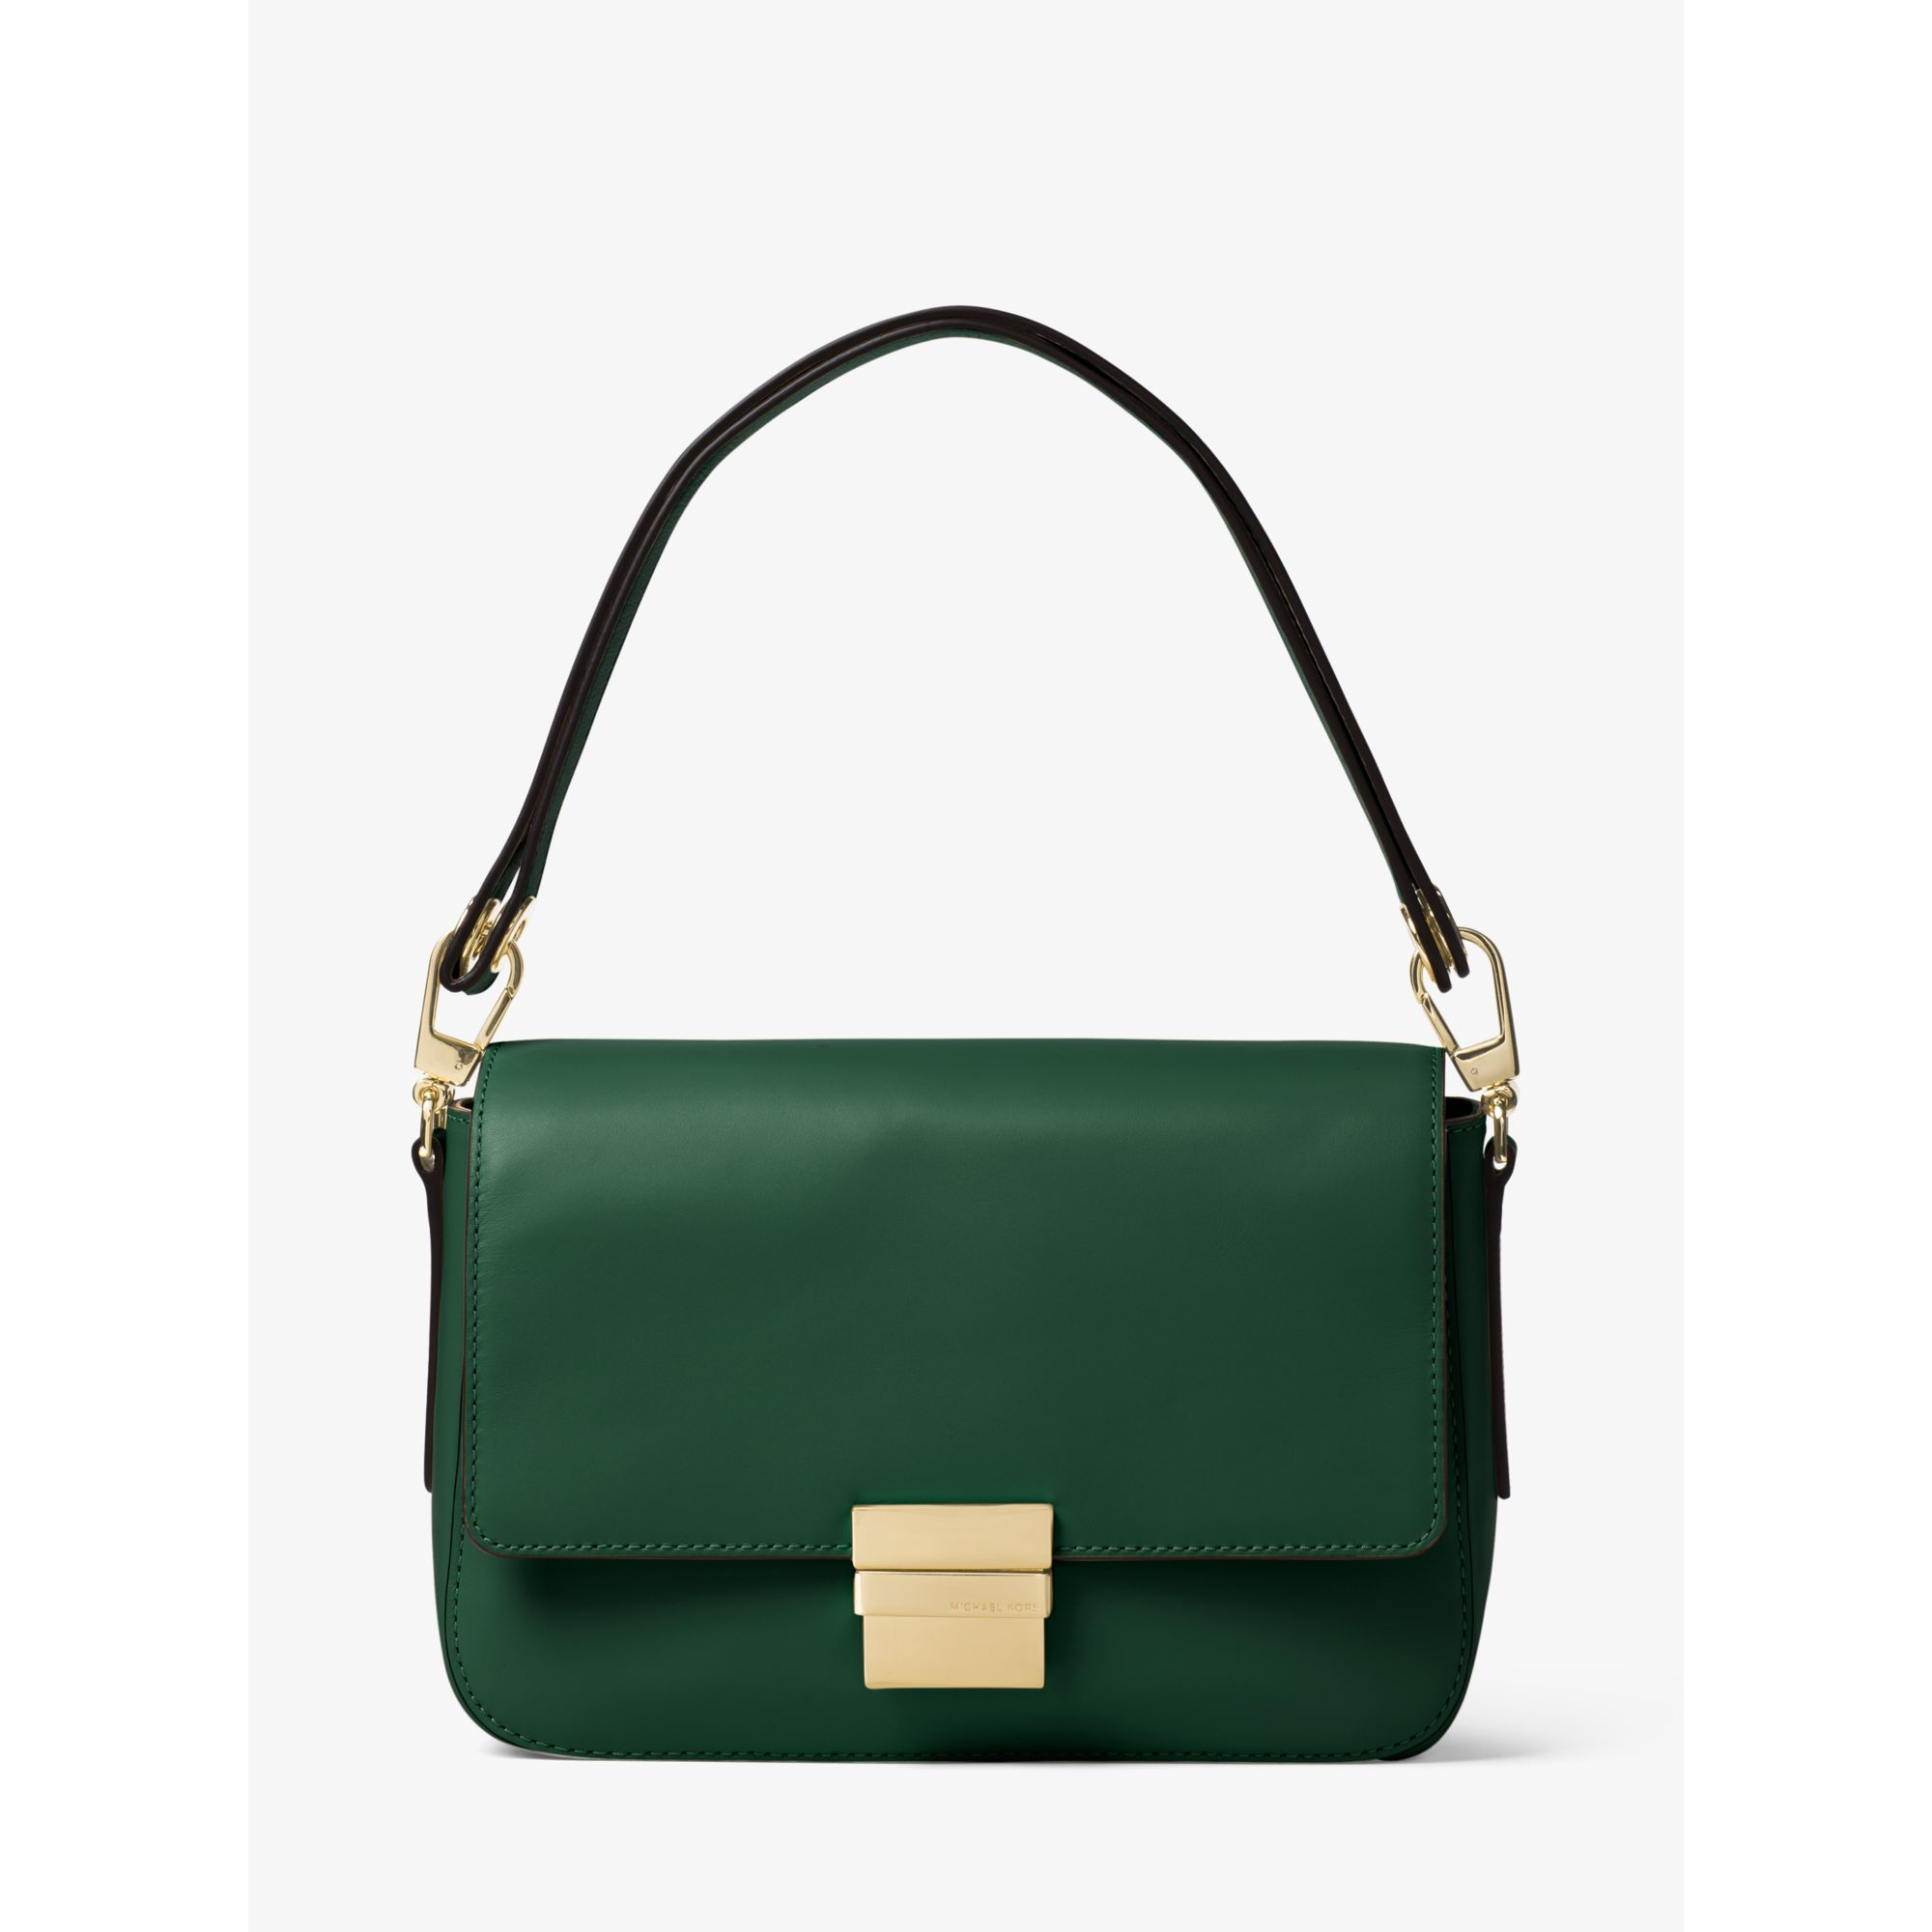 373b8e802057 Lyst - Michael Kors Madelyn Large Leather Shoulder Bag in Green